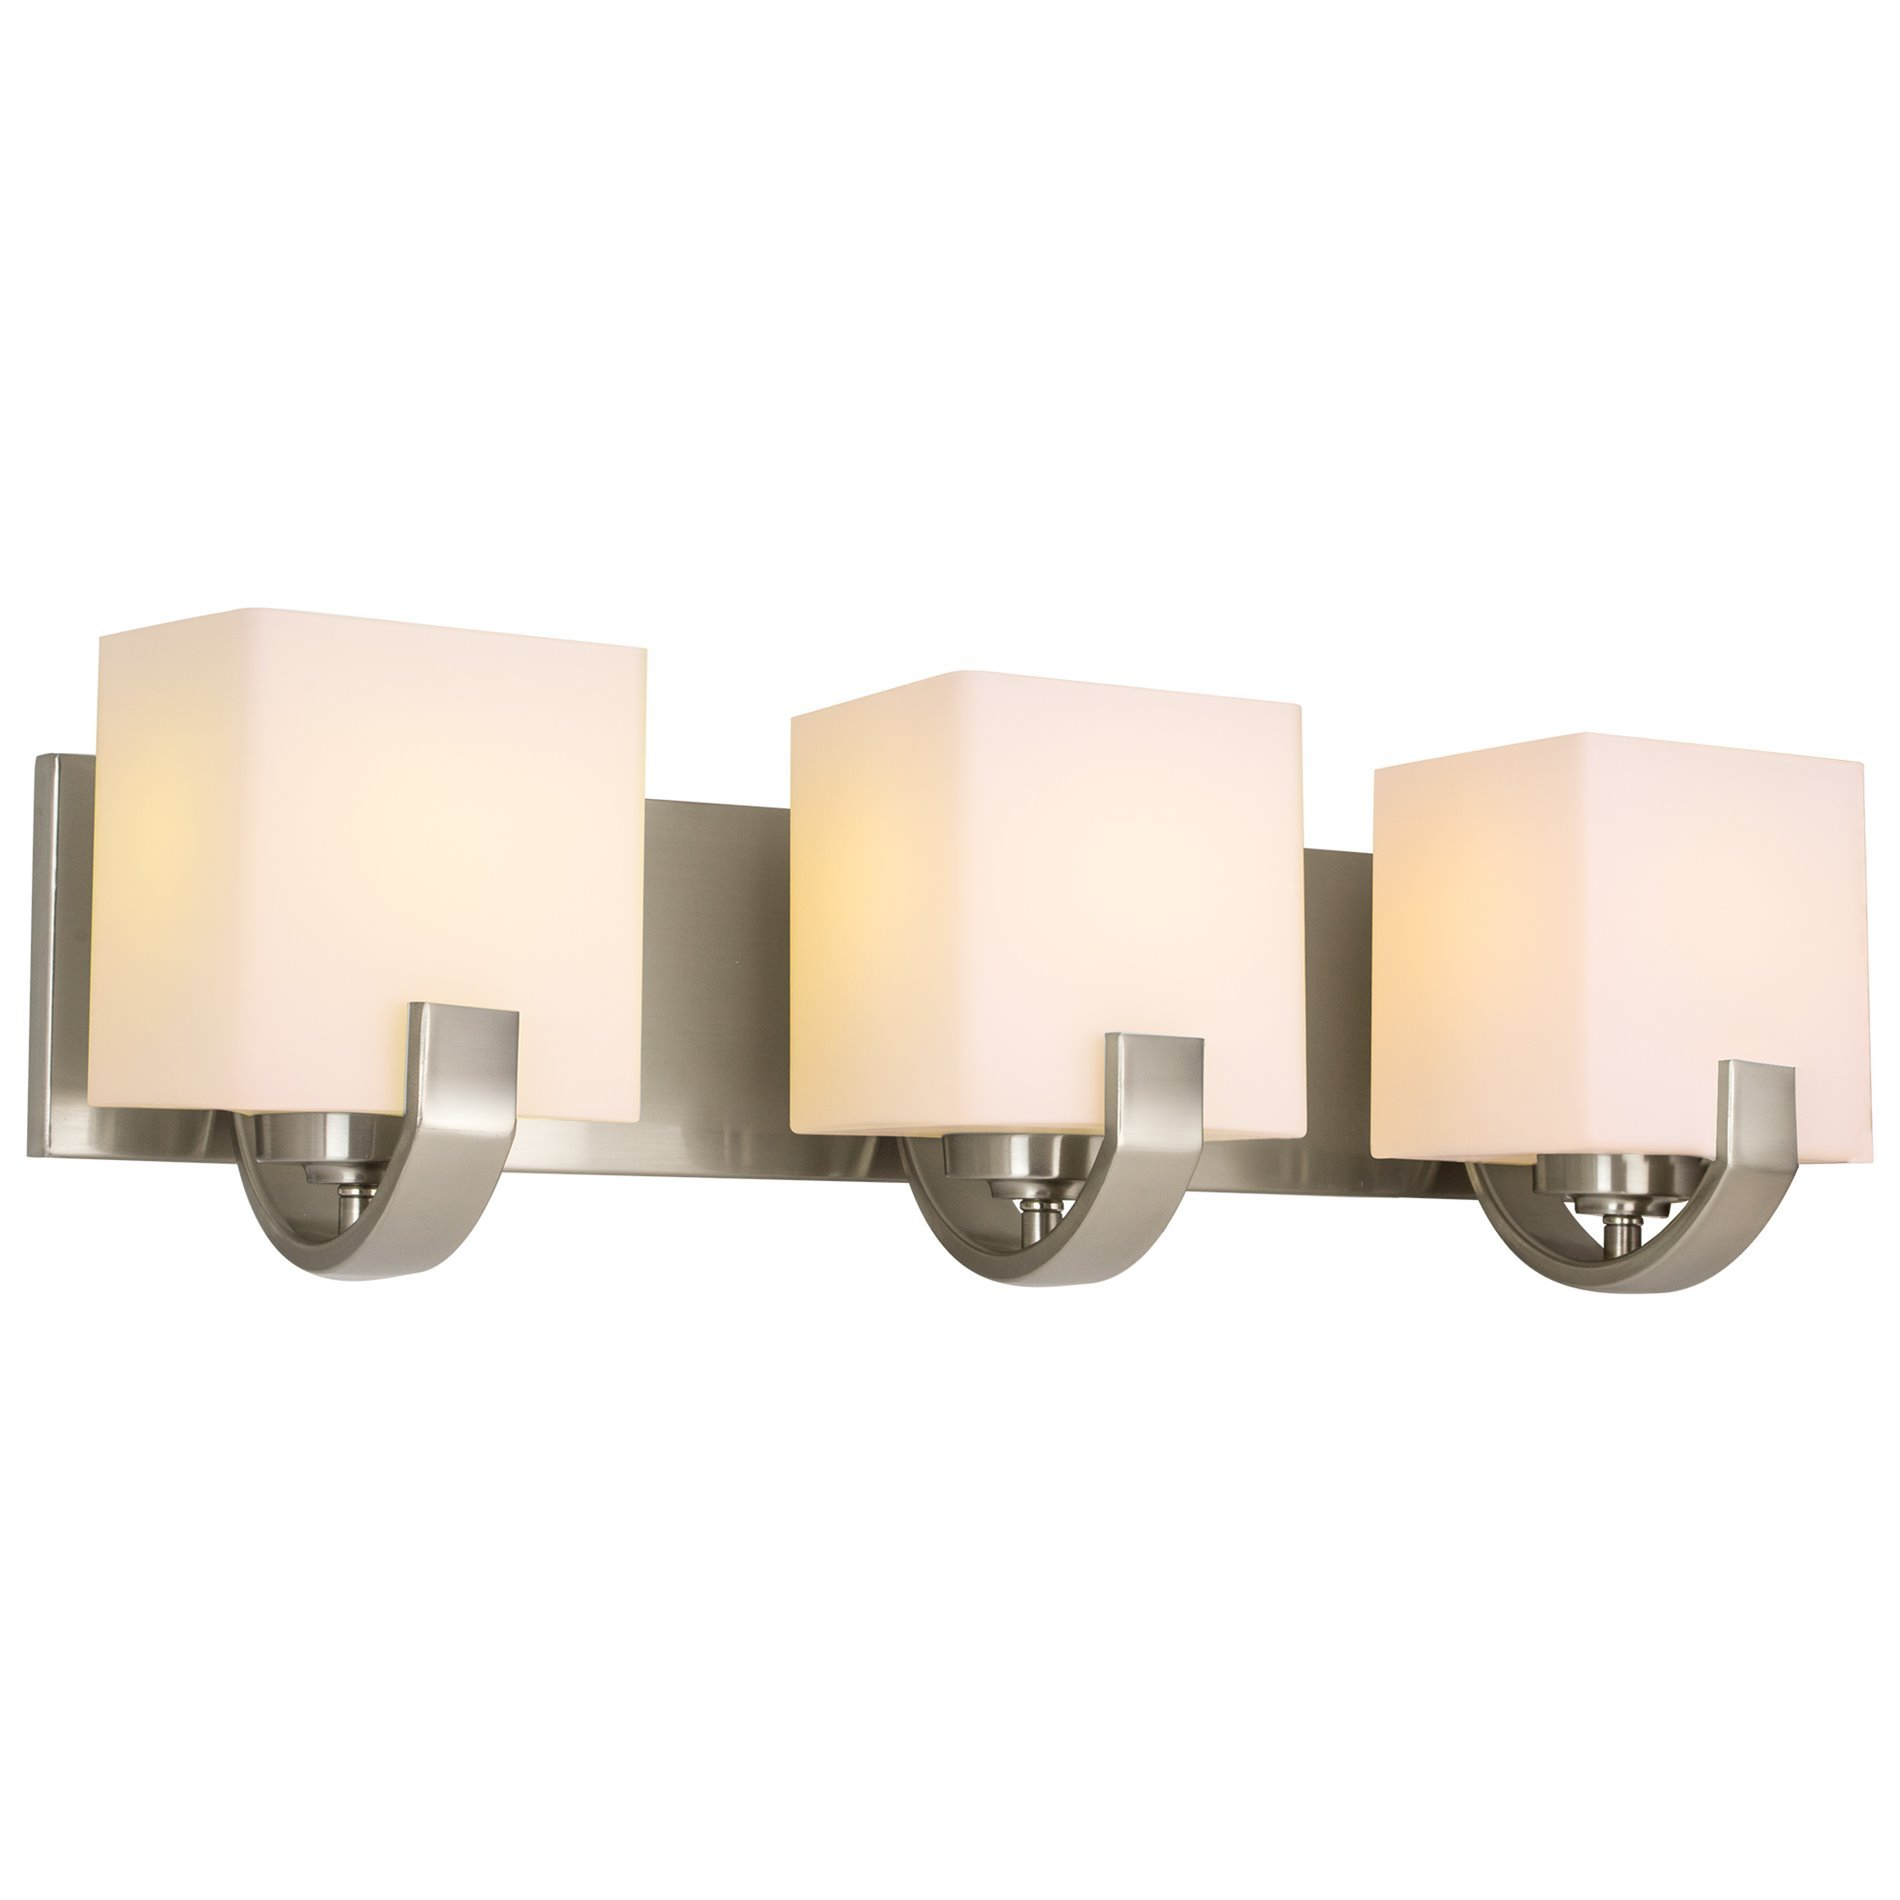 Revel Caroline 23'' 3-Light Contemporary Vanity/Bathroom Light, Brushed Nickel Finish